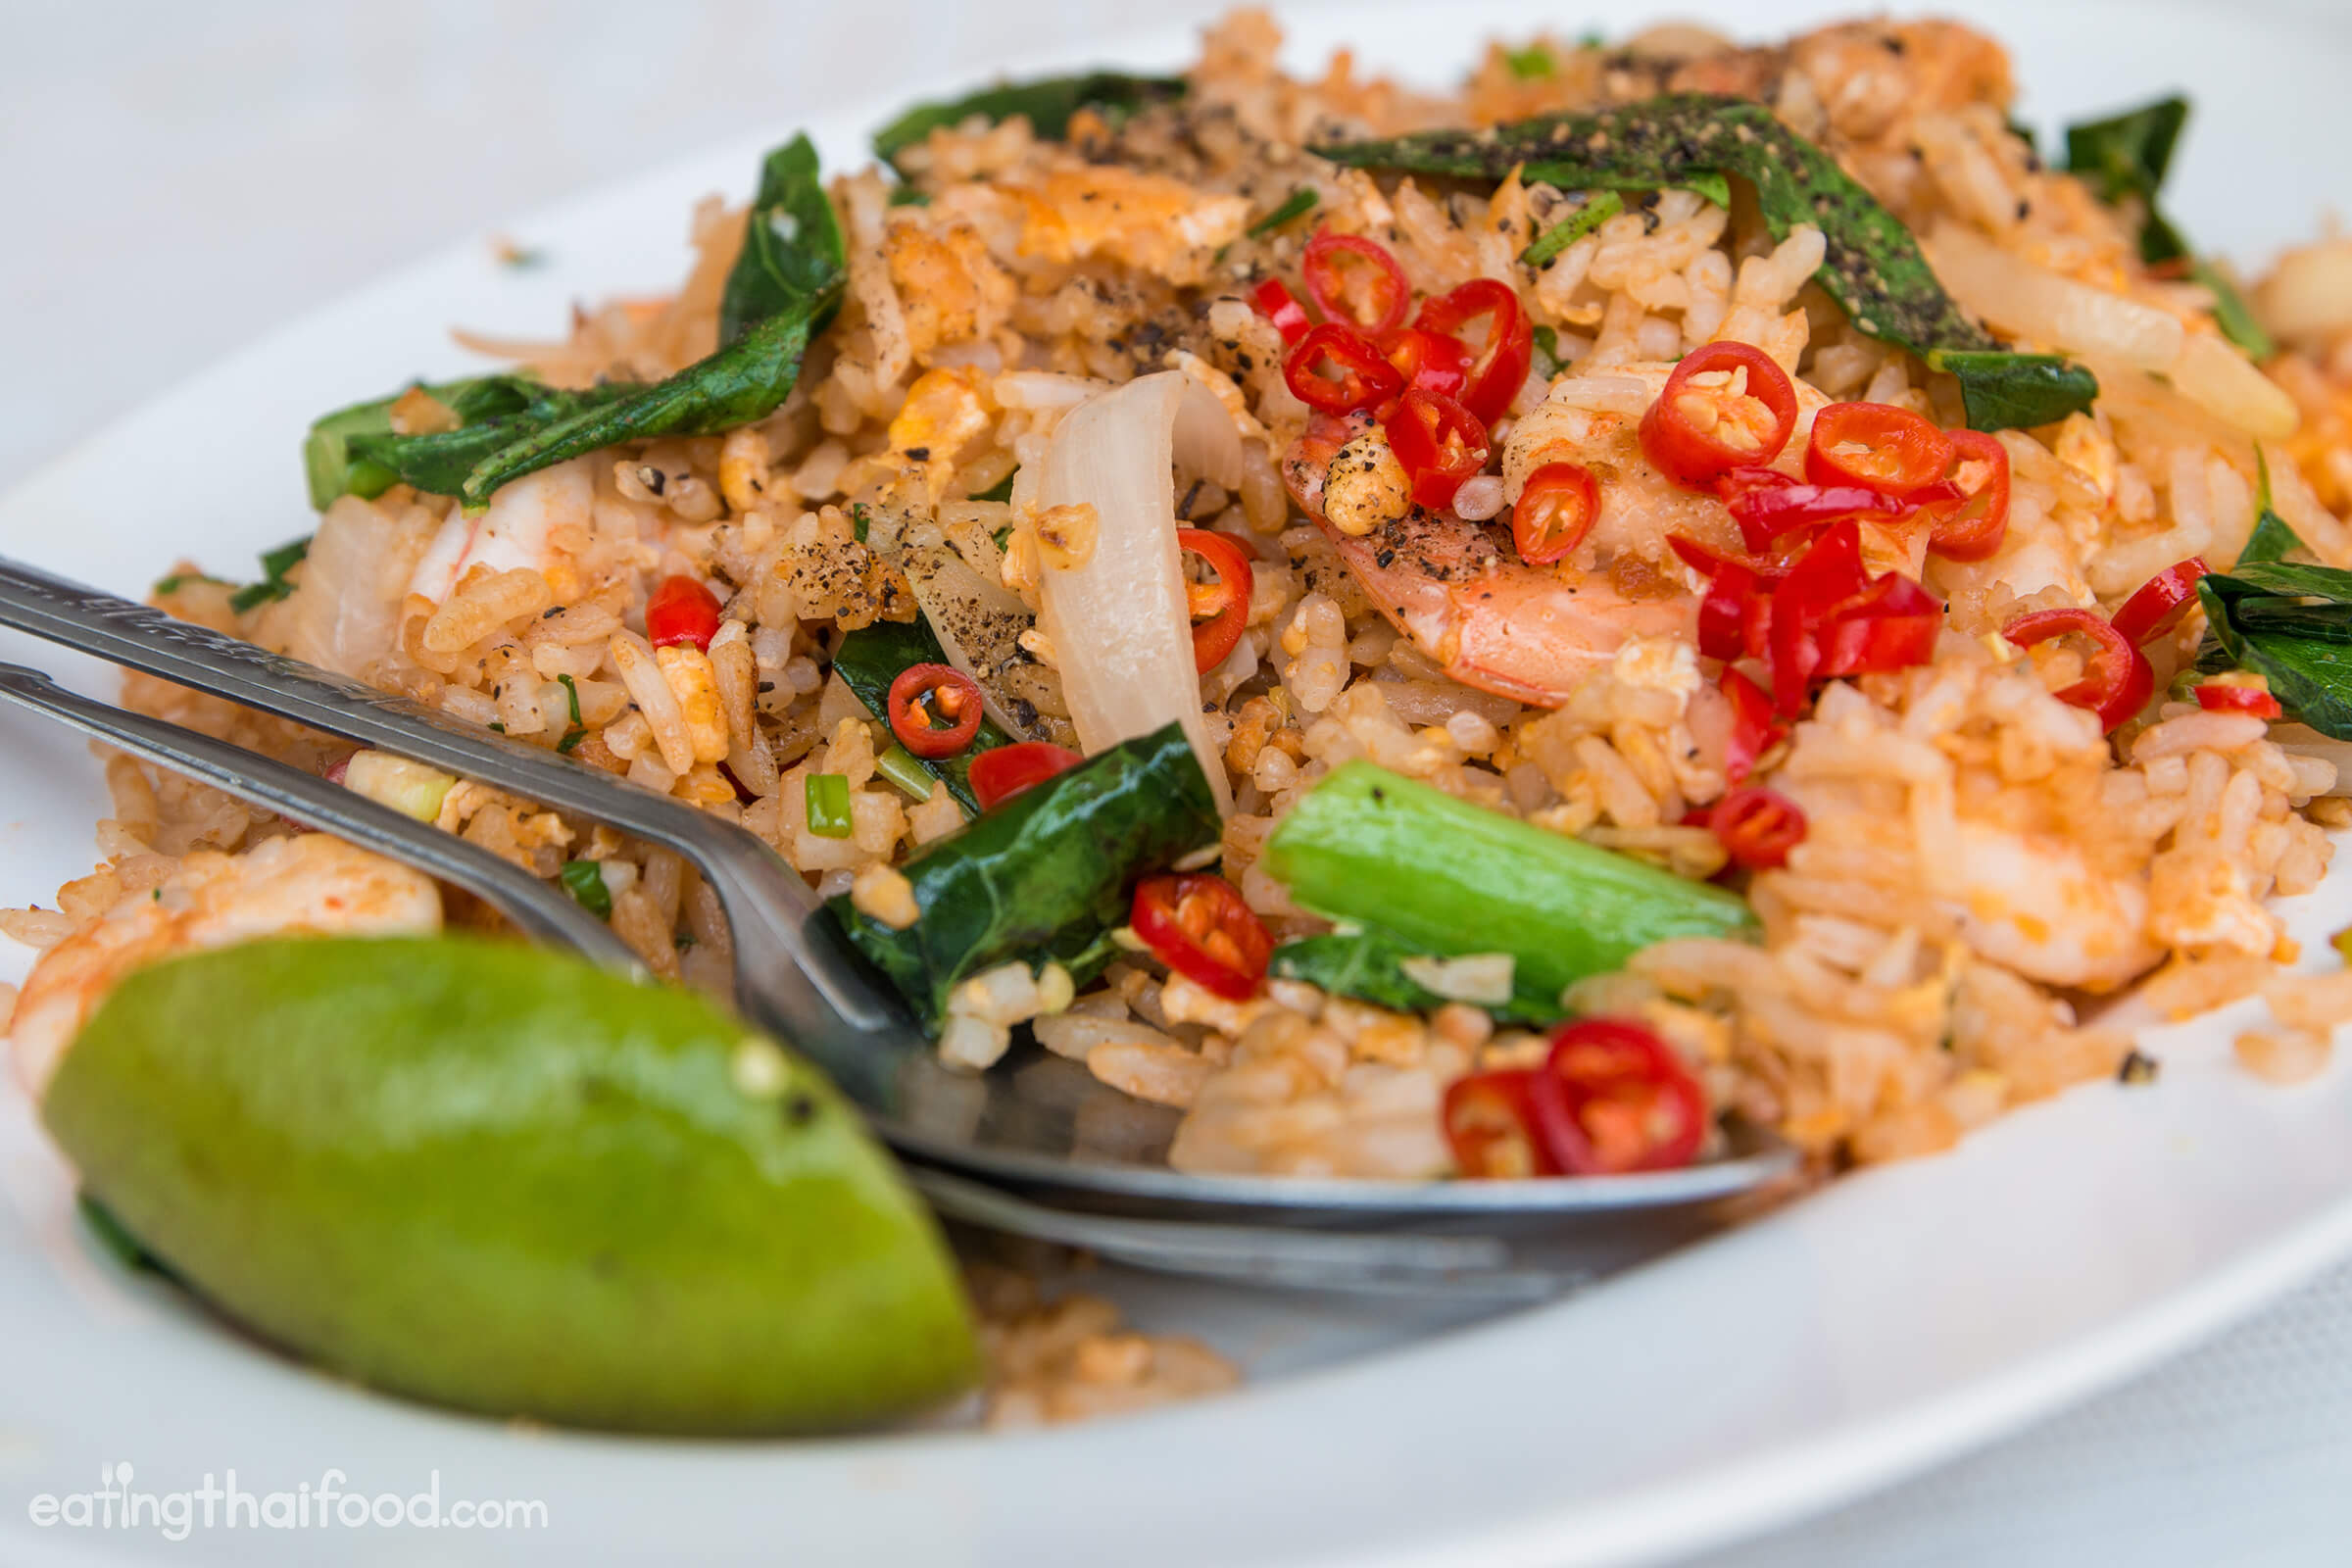 Authentic thai fried rice recipe street food style thai fried rice recipe forumfinder Choice Image